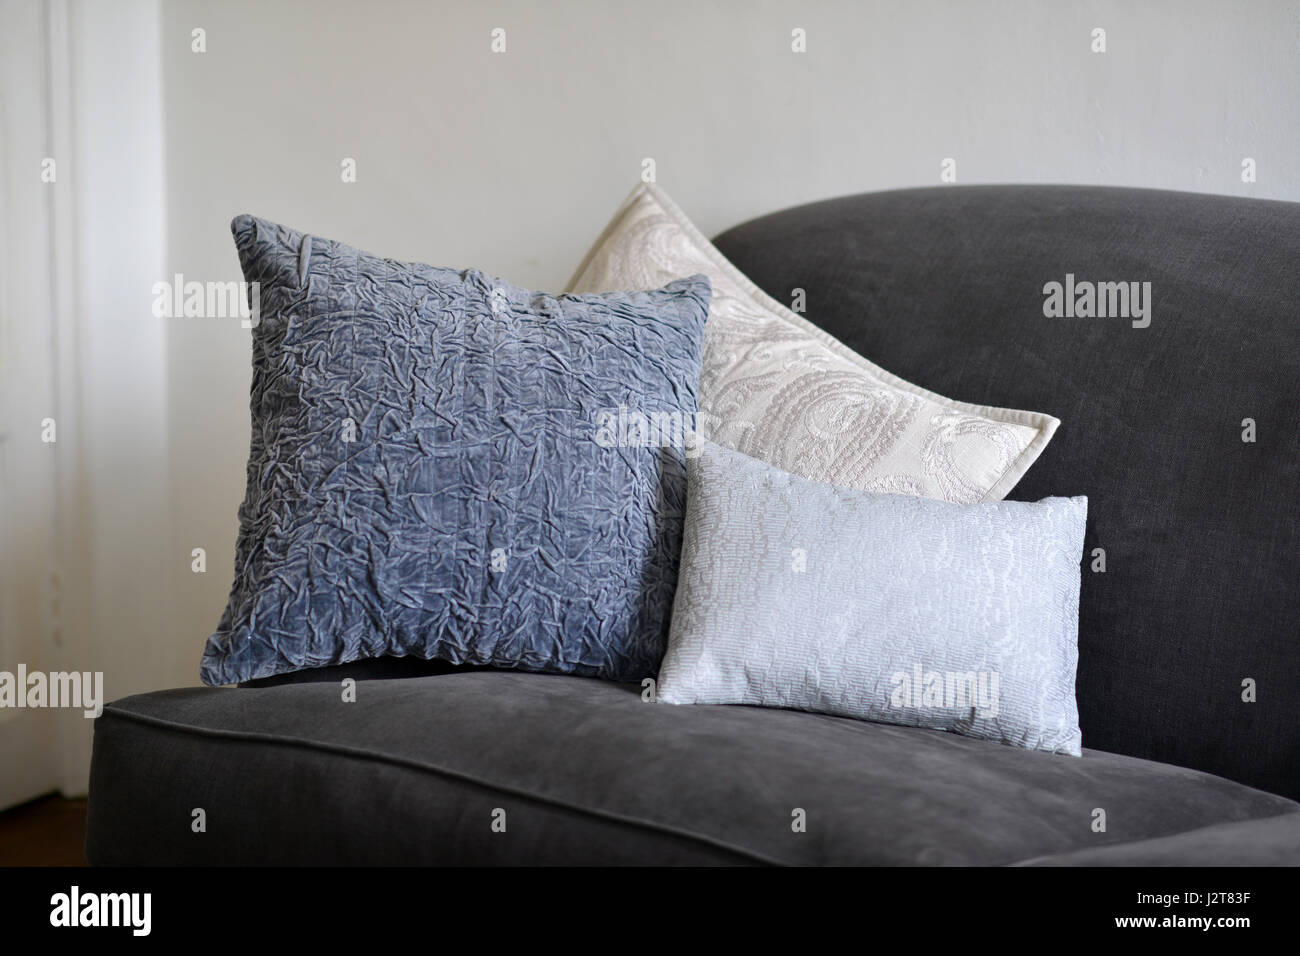 Textured cushions on a couch - Stock Image